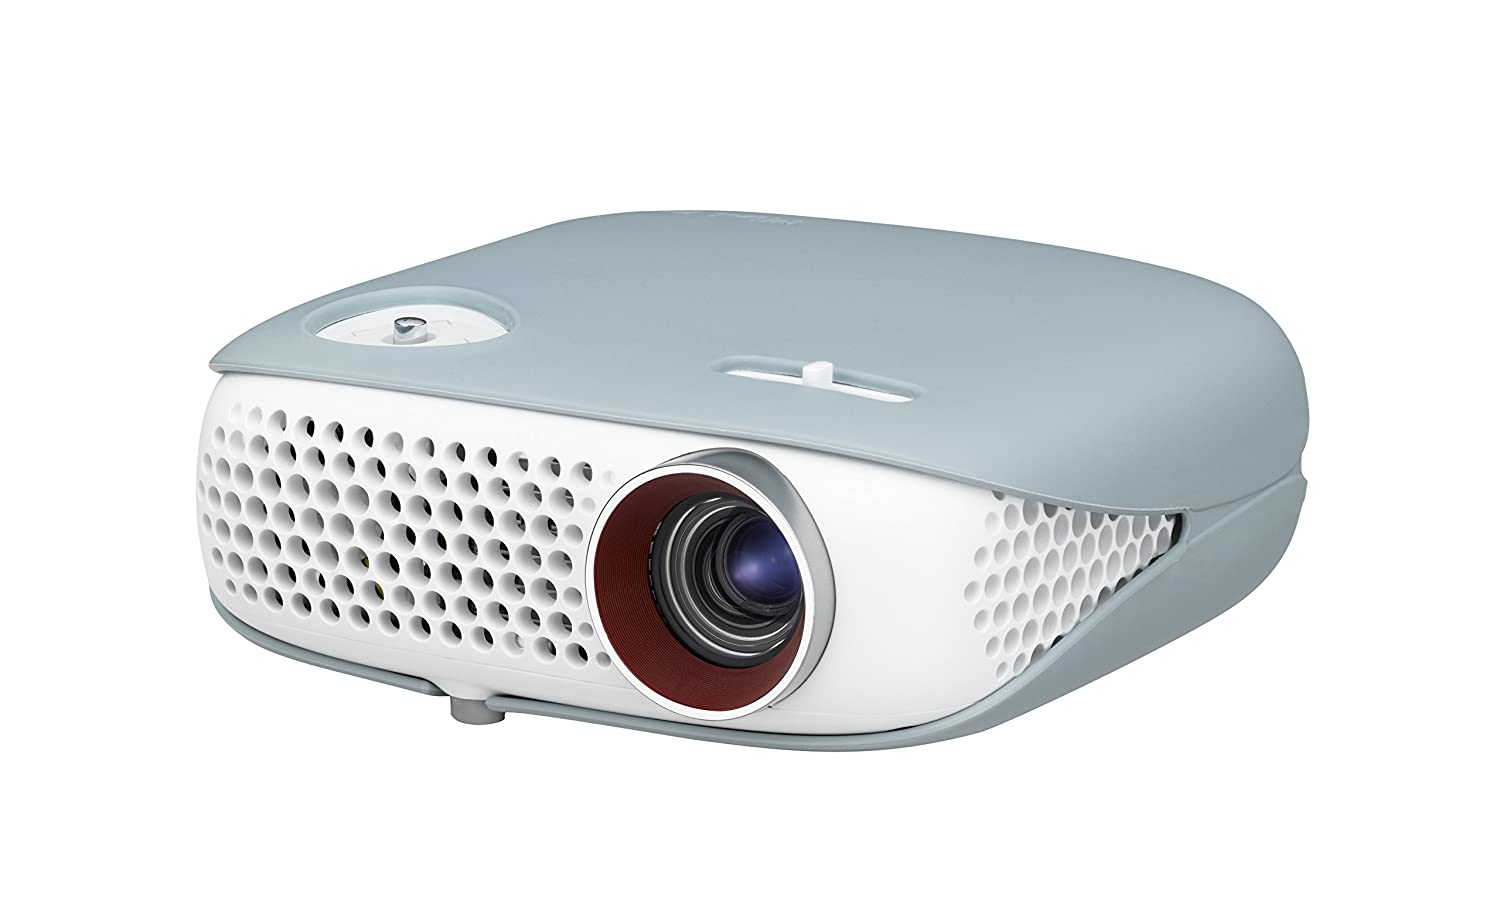 Lg minibeam nano 130 lumen hd lcos pico projector ph150g b amp h - Amazon Com Lg Electronics Pw800 Minibeam Projector With Built In Tv Tuner And Wireless Screen Share Electronics